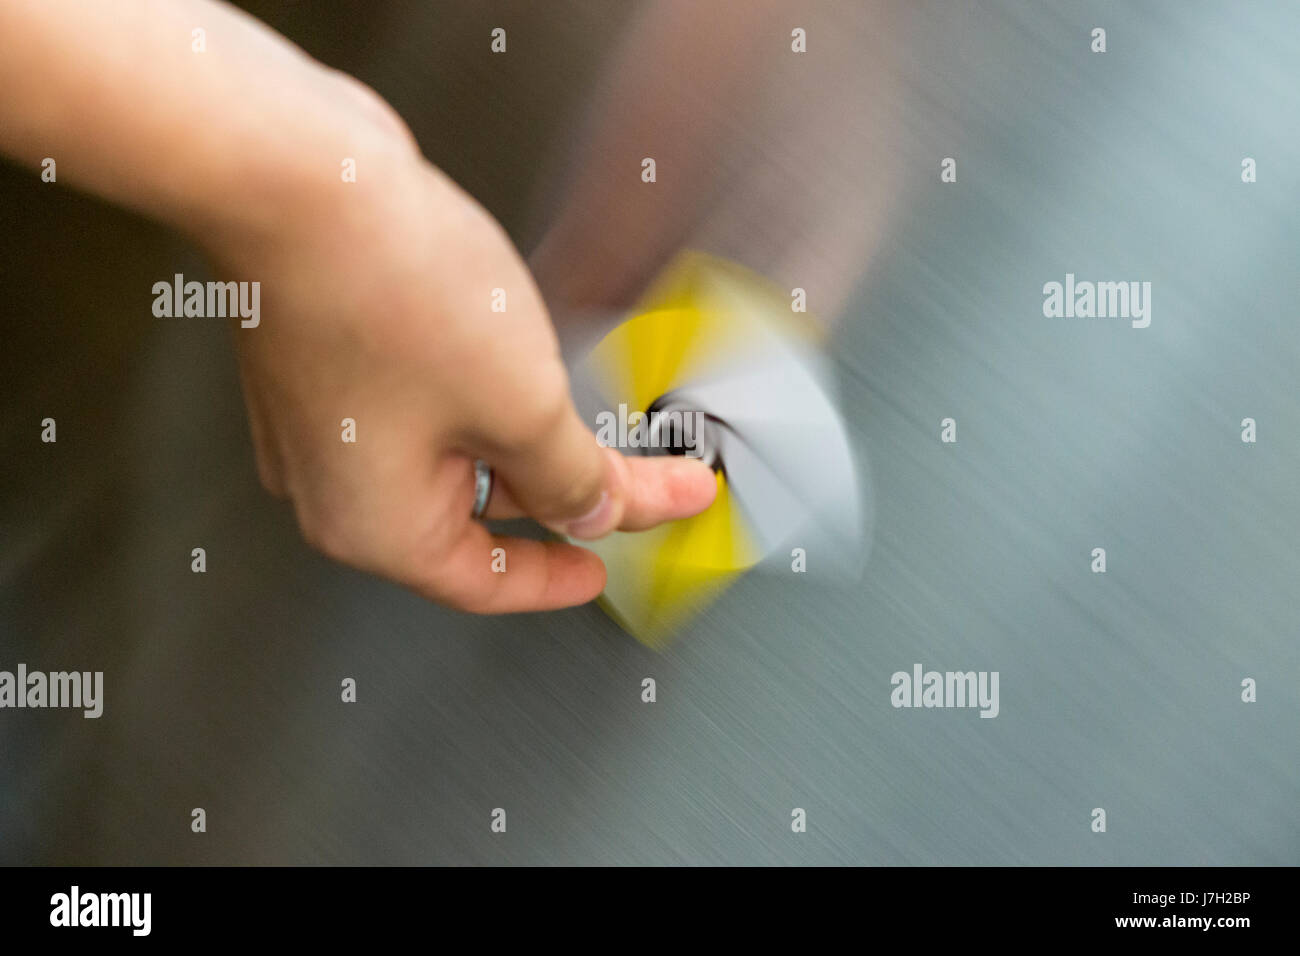 Card being spun on the side of an escalator Stock Photo